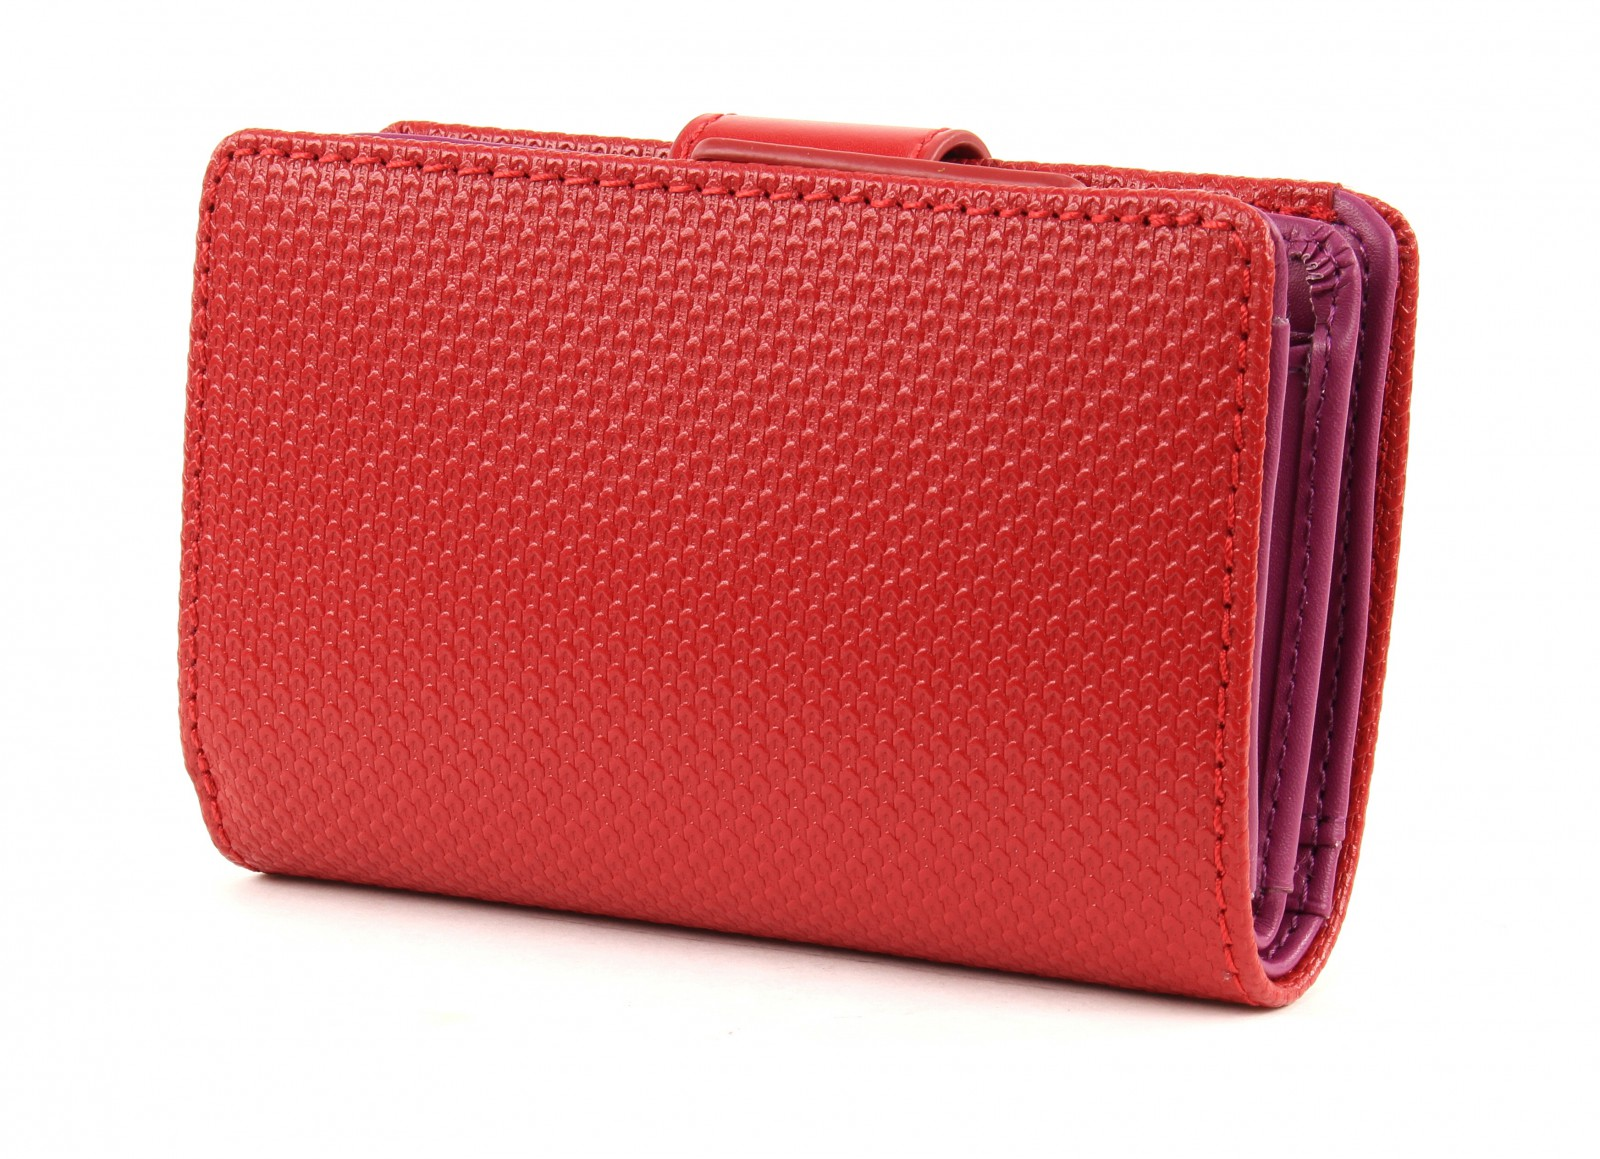 lacoste chantaco medium wallet geldb rse portemonnaie damen rot pompeian red ebay. Black Bedroom Furniture Sets. Home Design Ideas